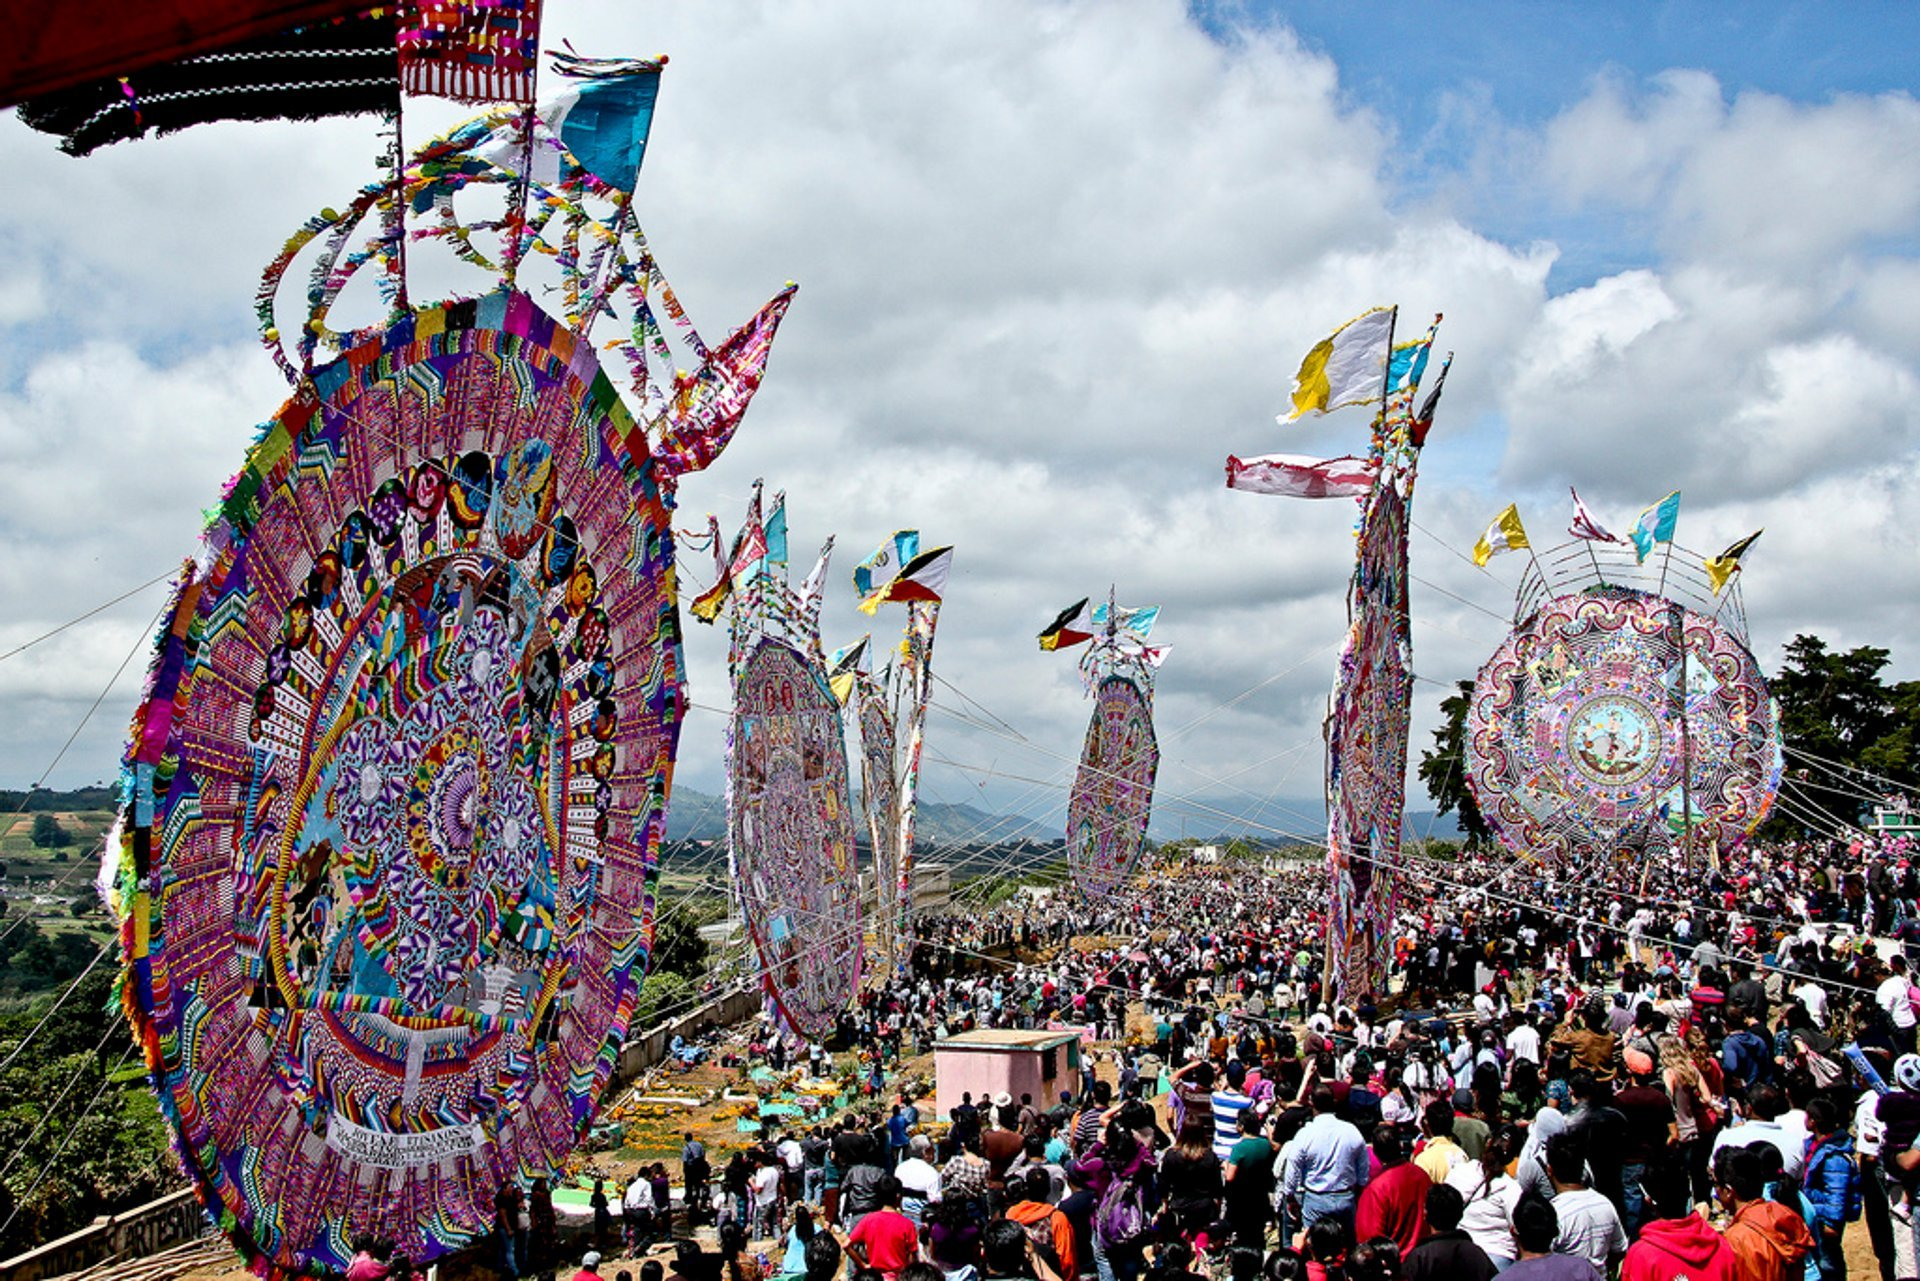 Festival de Barriletes Gigantes or Day of the Dead Kite Festival in Guatemala 2019 - Best Time